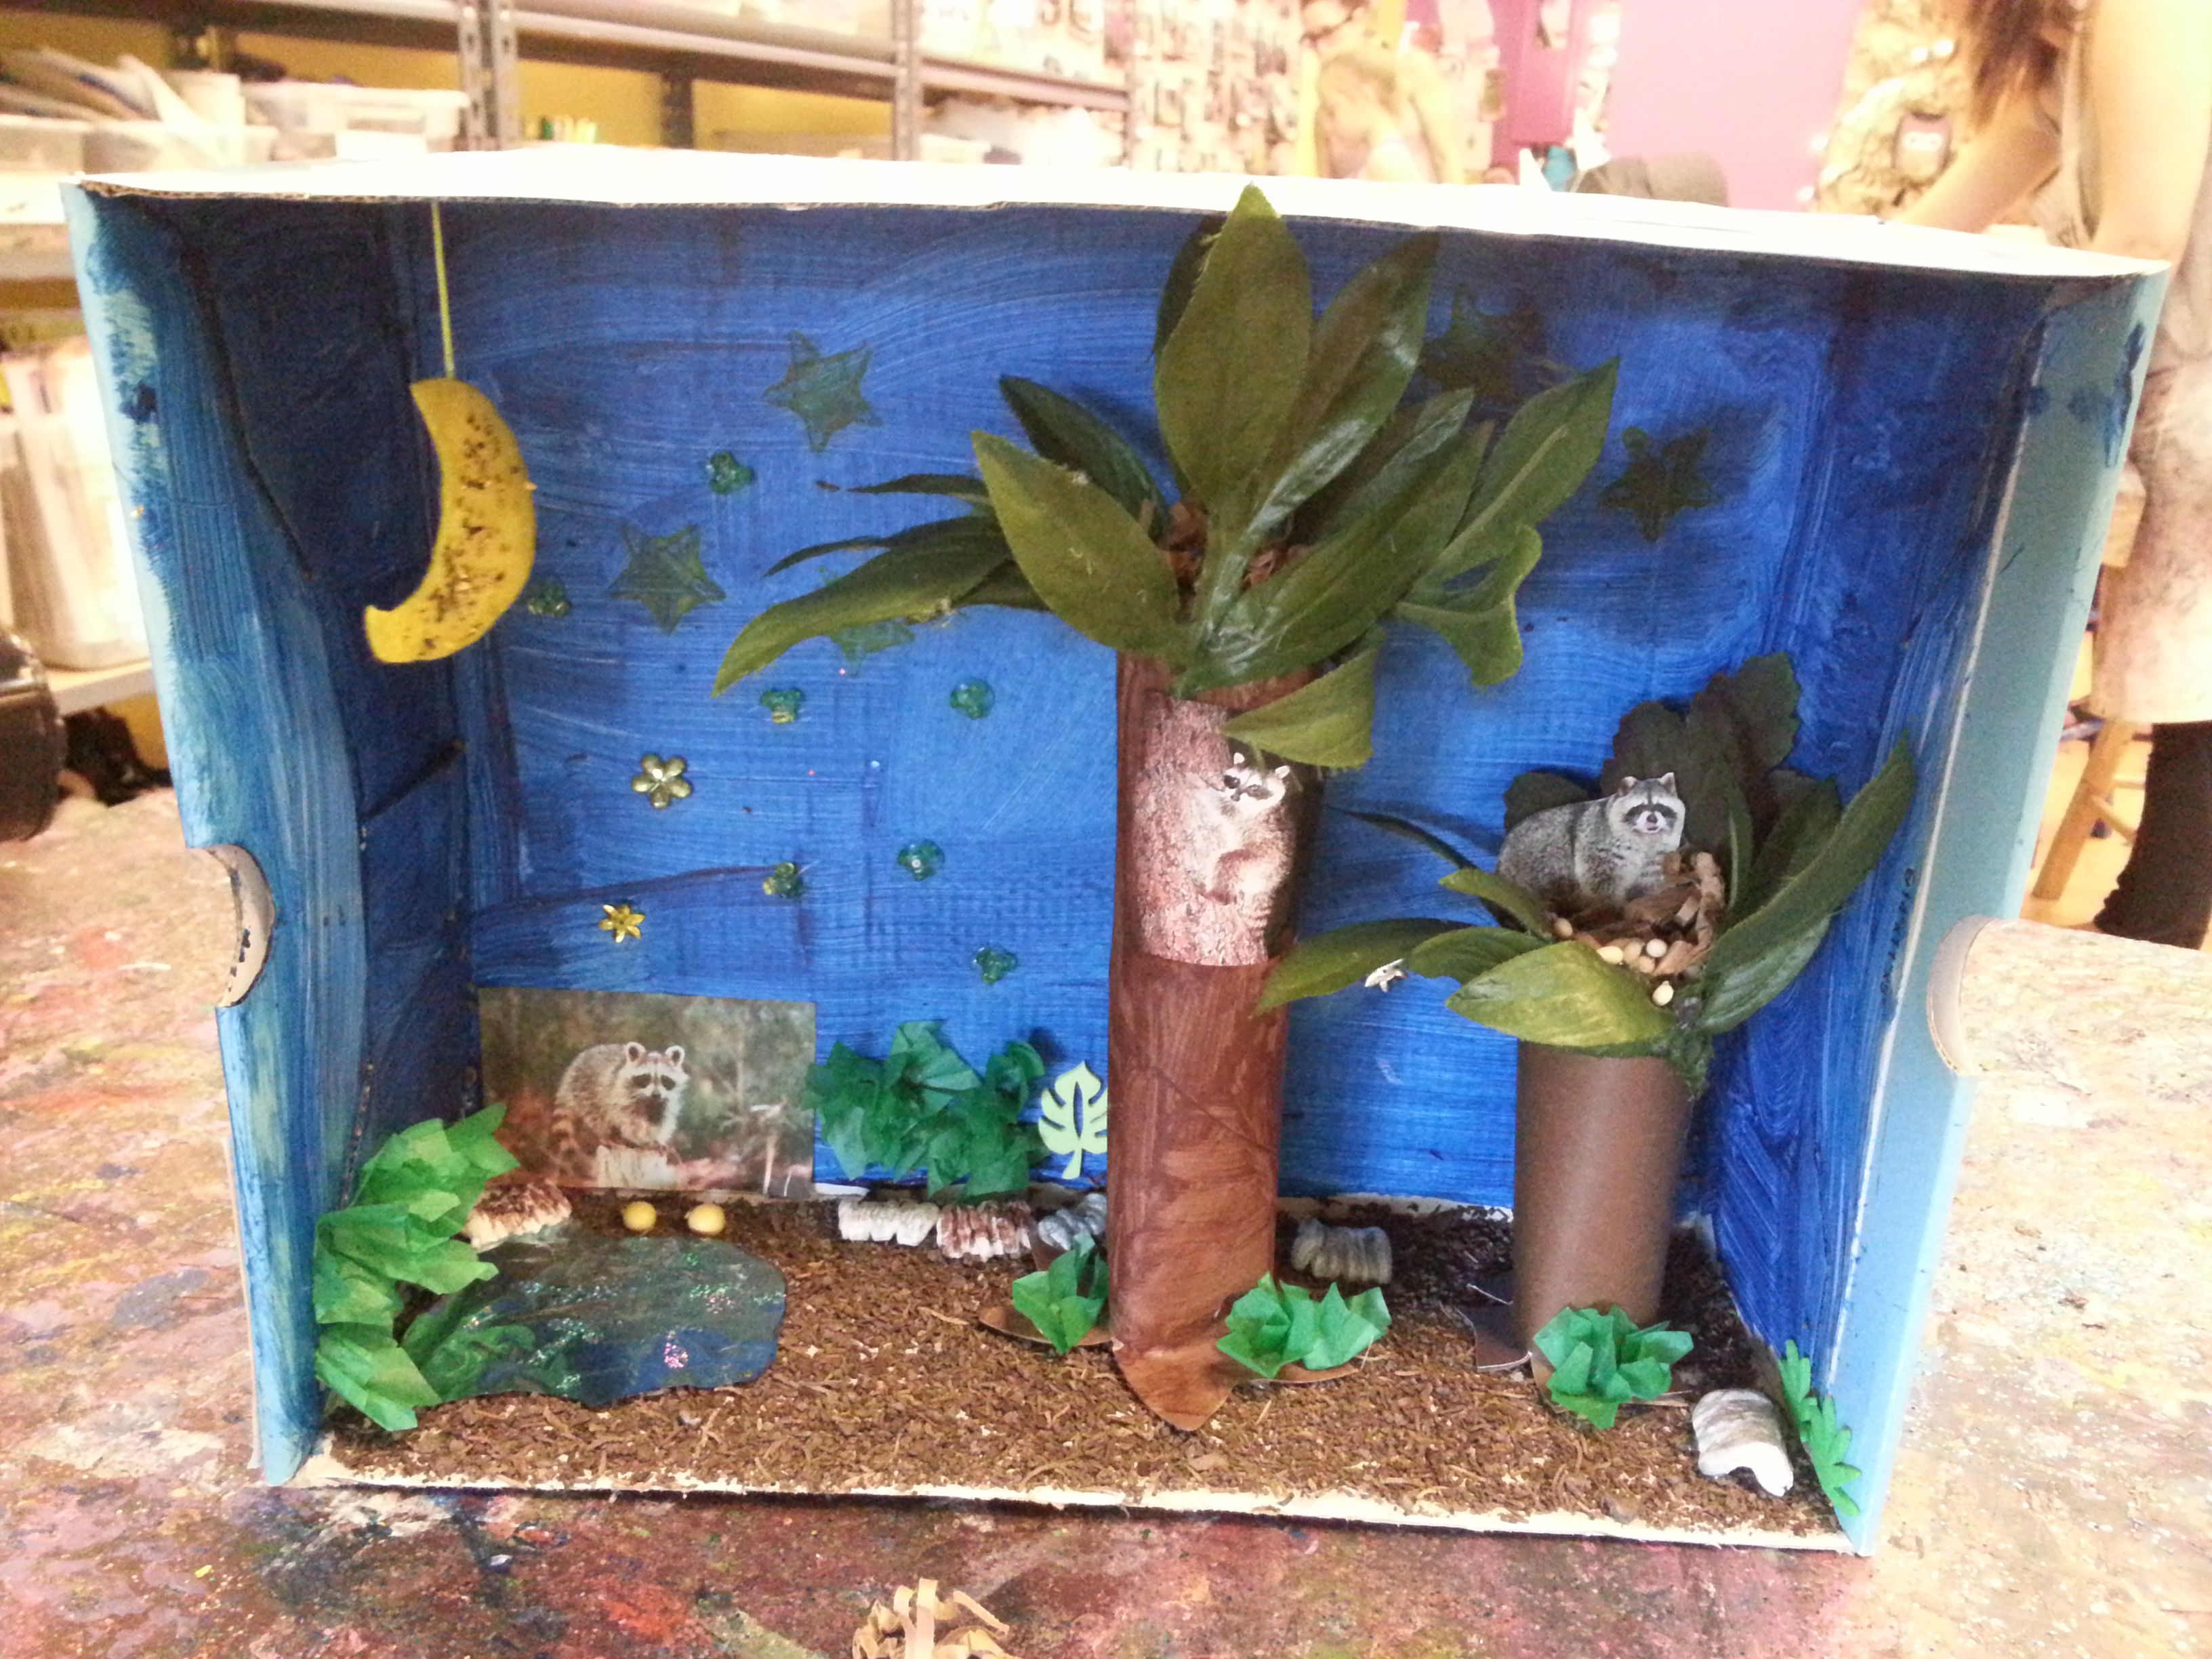 I Learned A Thing Or Two As Amanda 8 Created This Raccoon Habitat Turns Out Those Striped